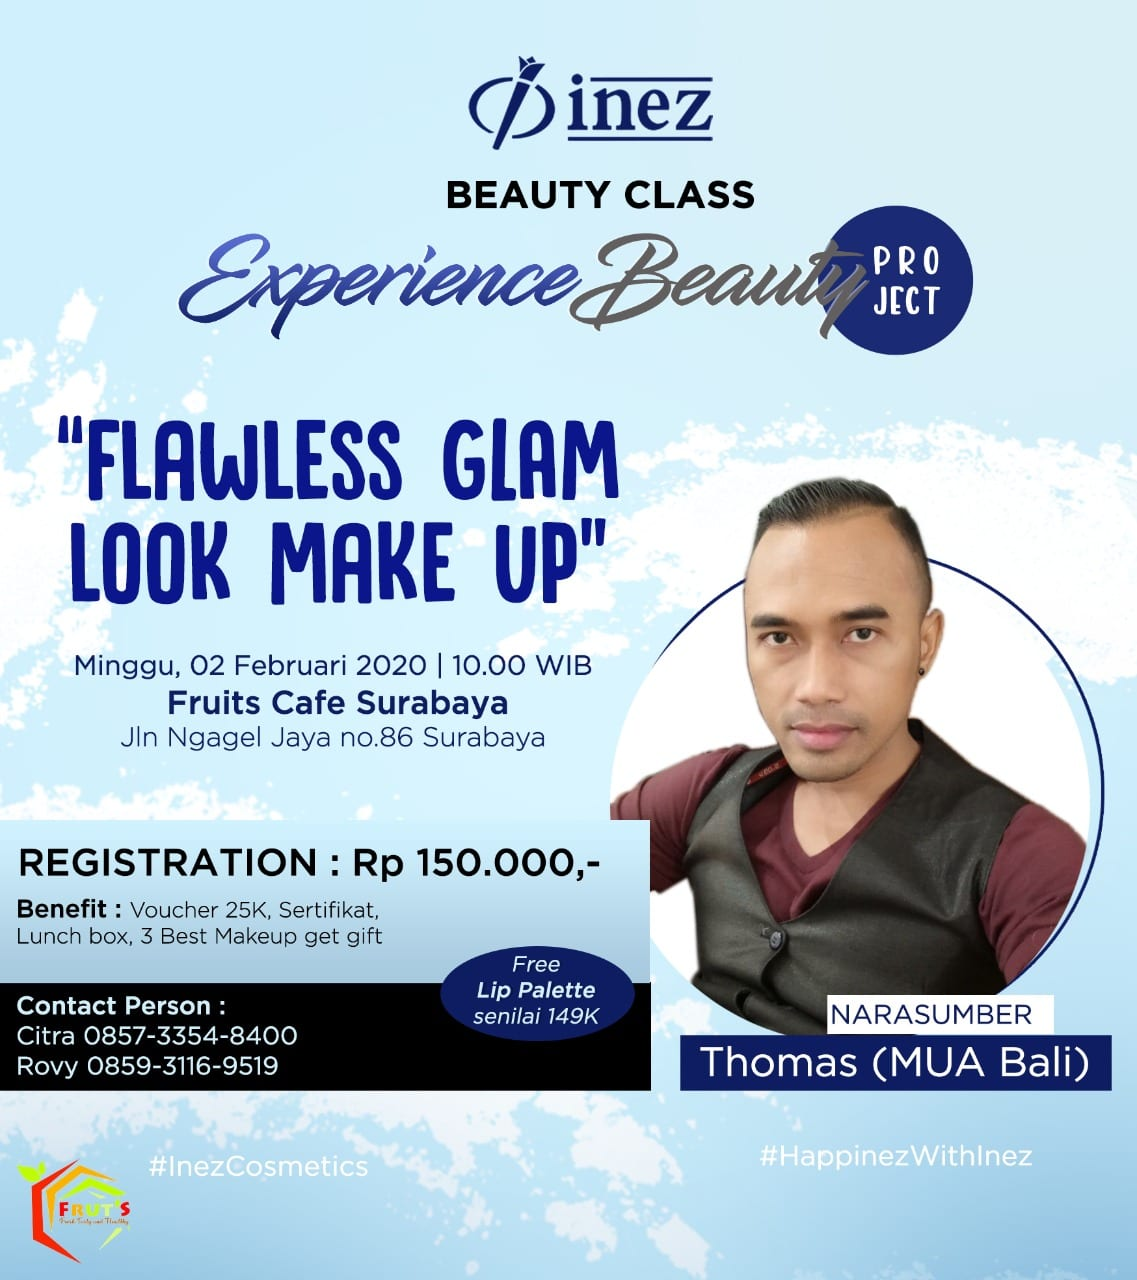 Experience Beauty Project – Flawless Glam Look Make Up with Thomas (MUA Bali)